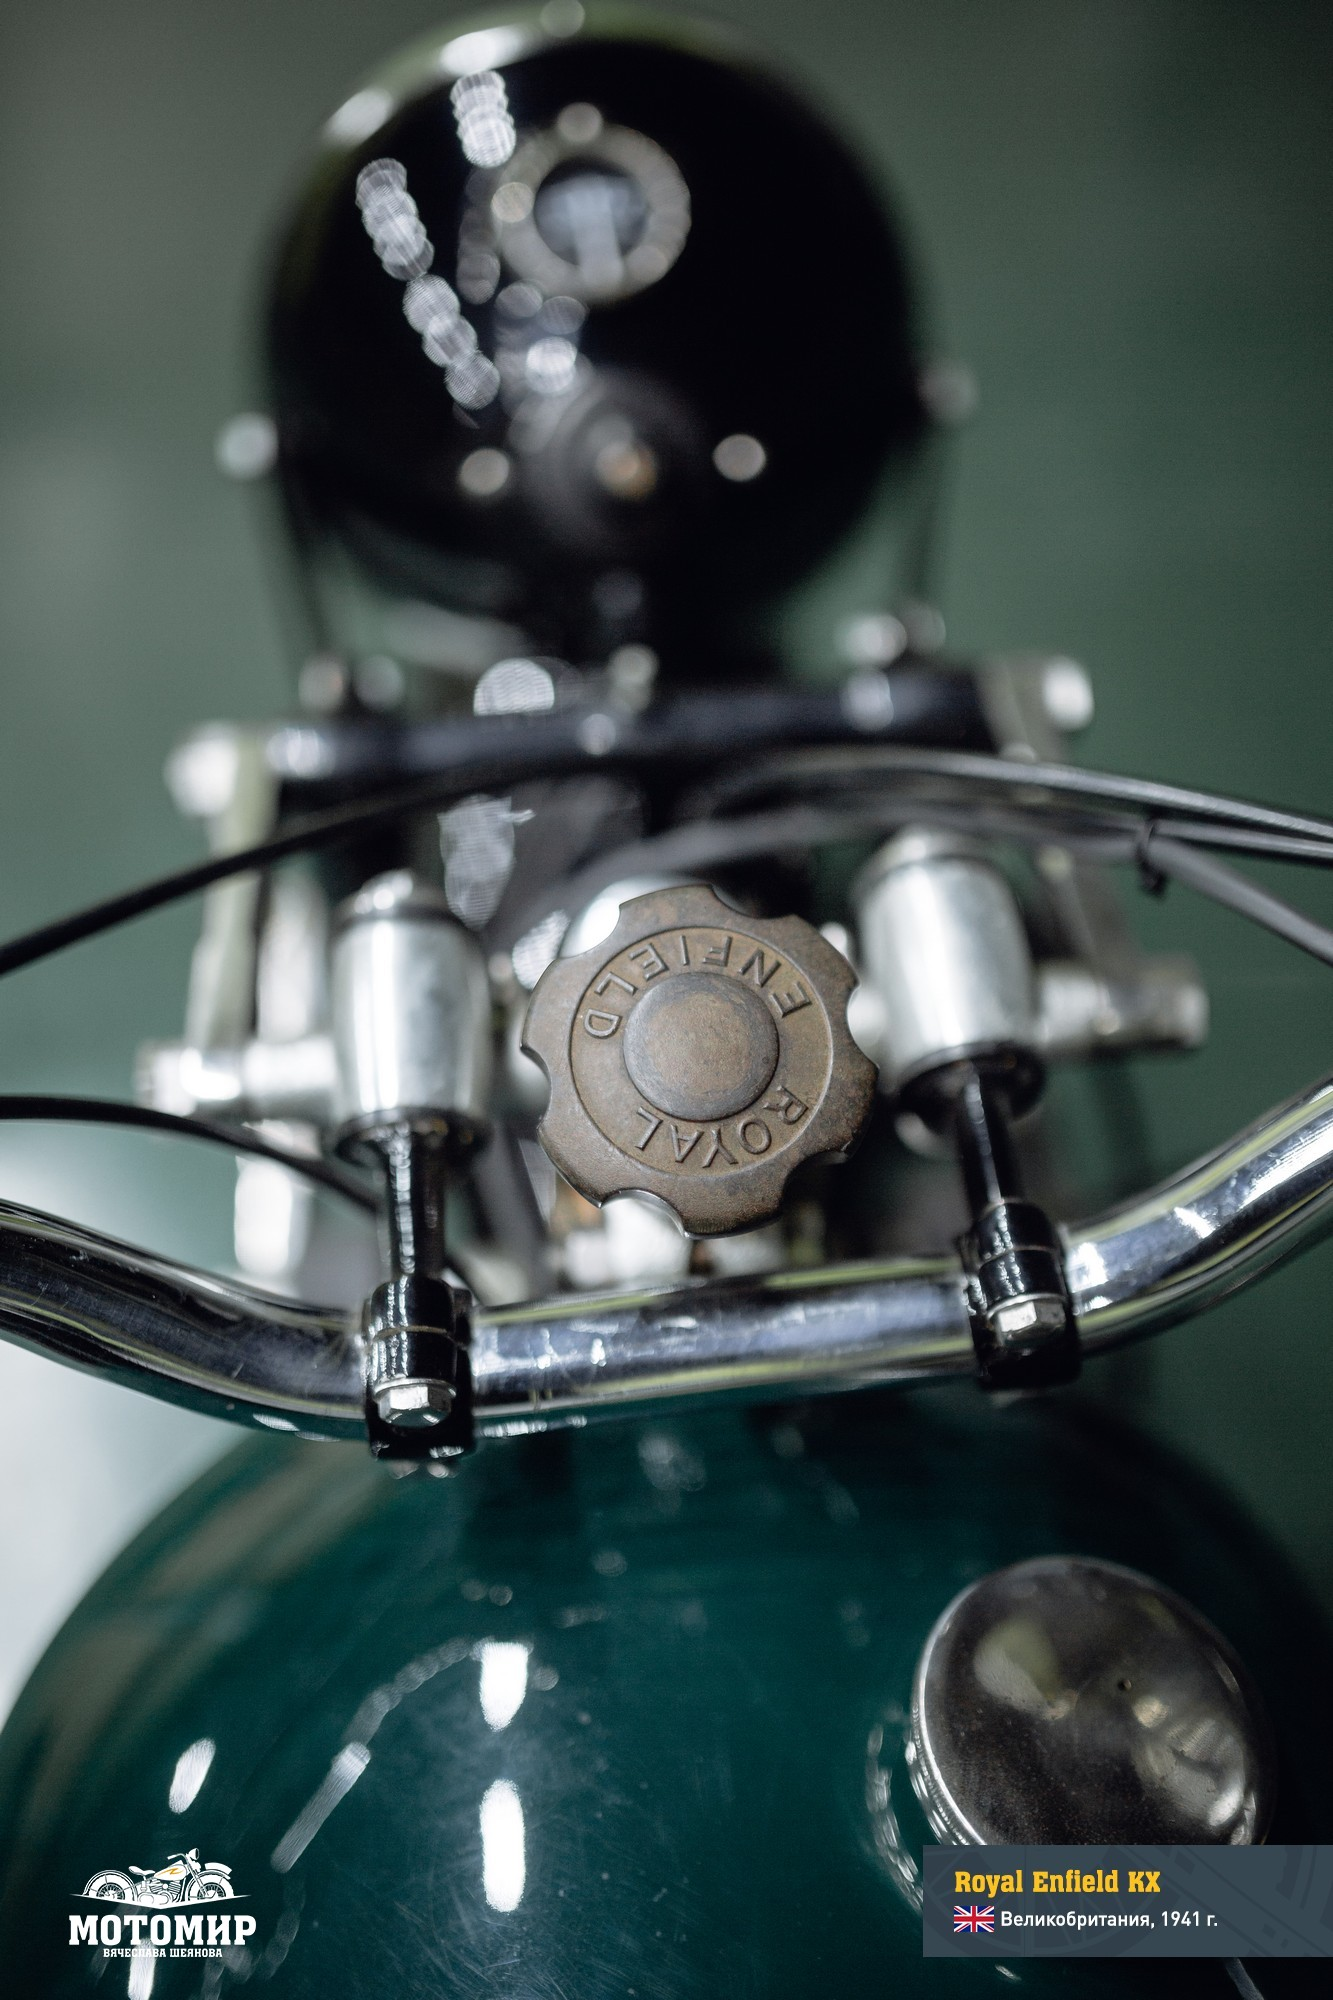 royal-enfield-kx-201601-web-15